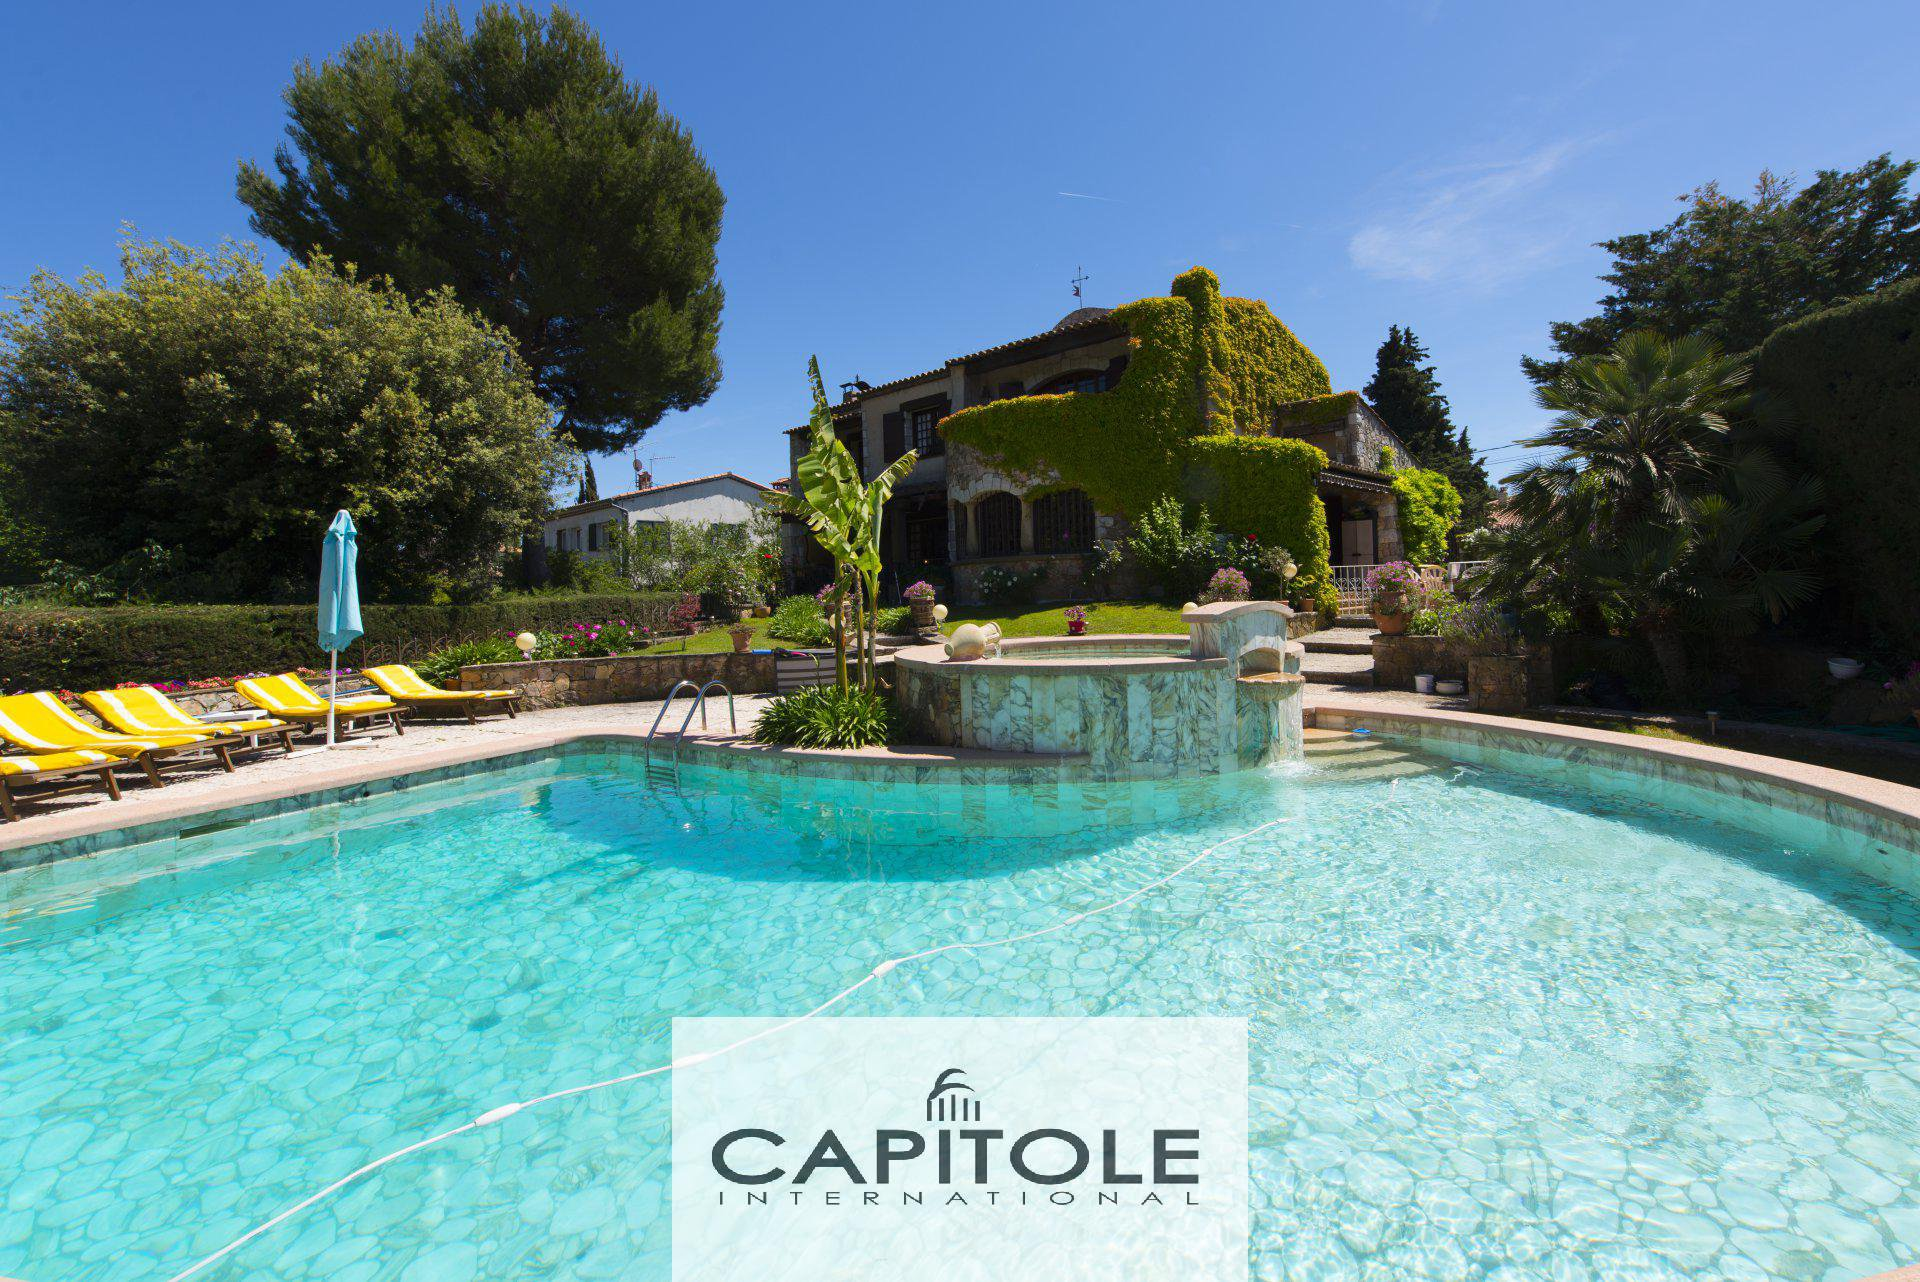 Antibes - 5 bedroom Villa of 250m² with pool and land of 1750m²